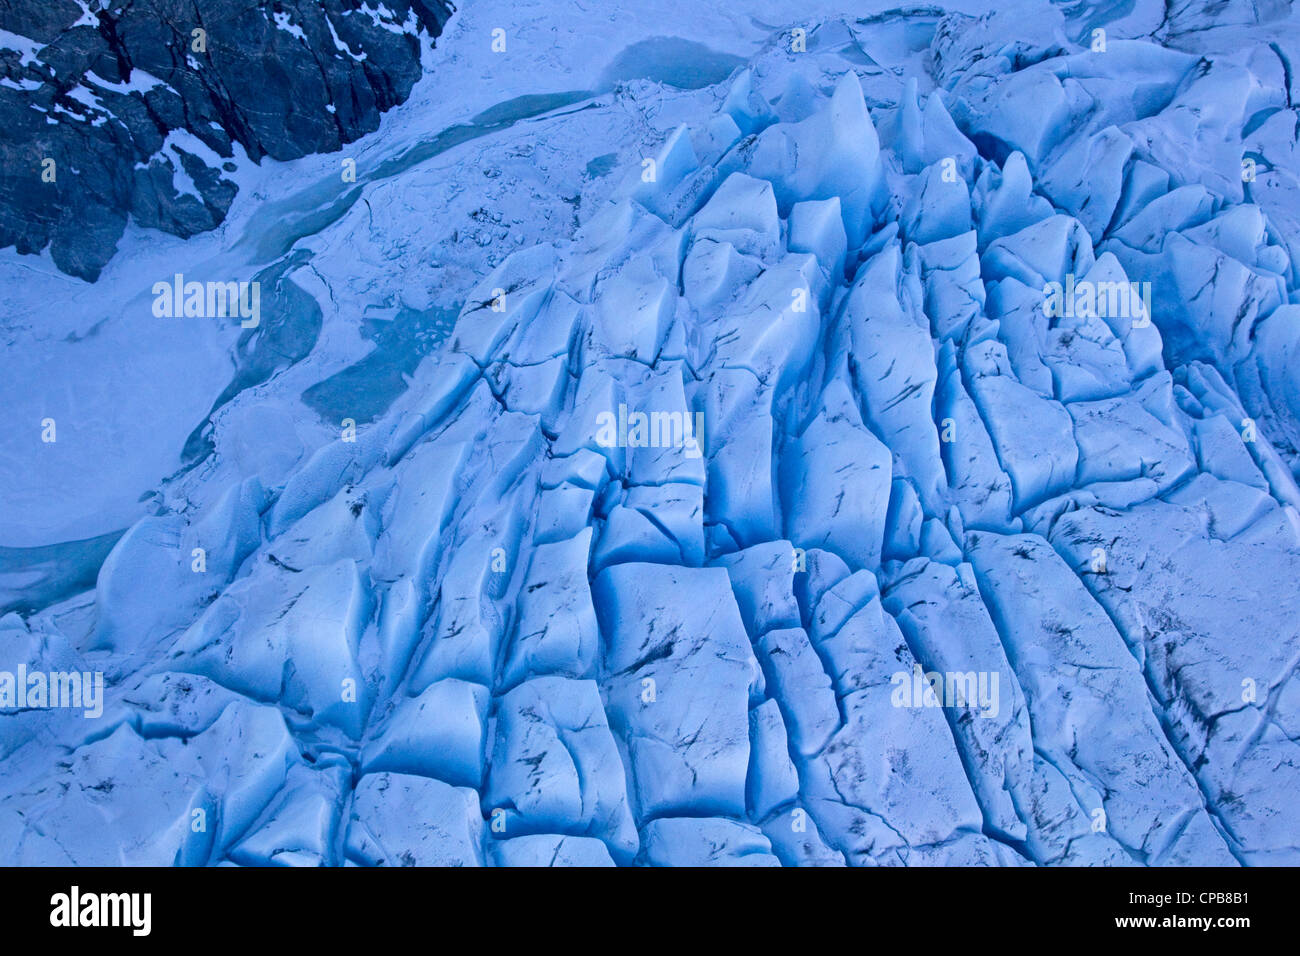 Glacier from above, close up blue detail texture, Alaska - Stock Image